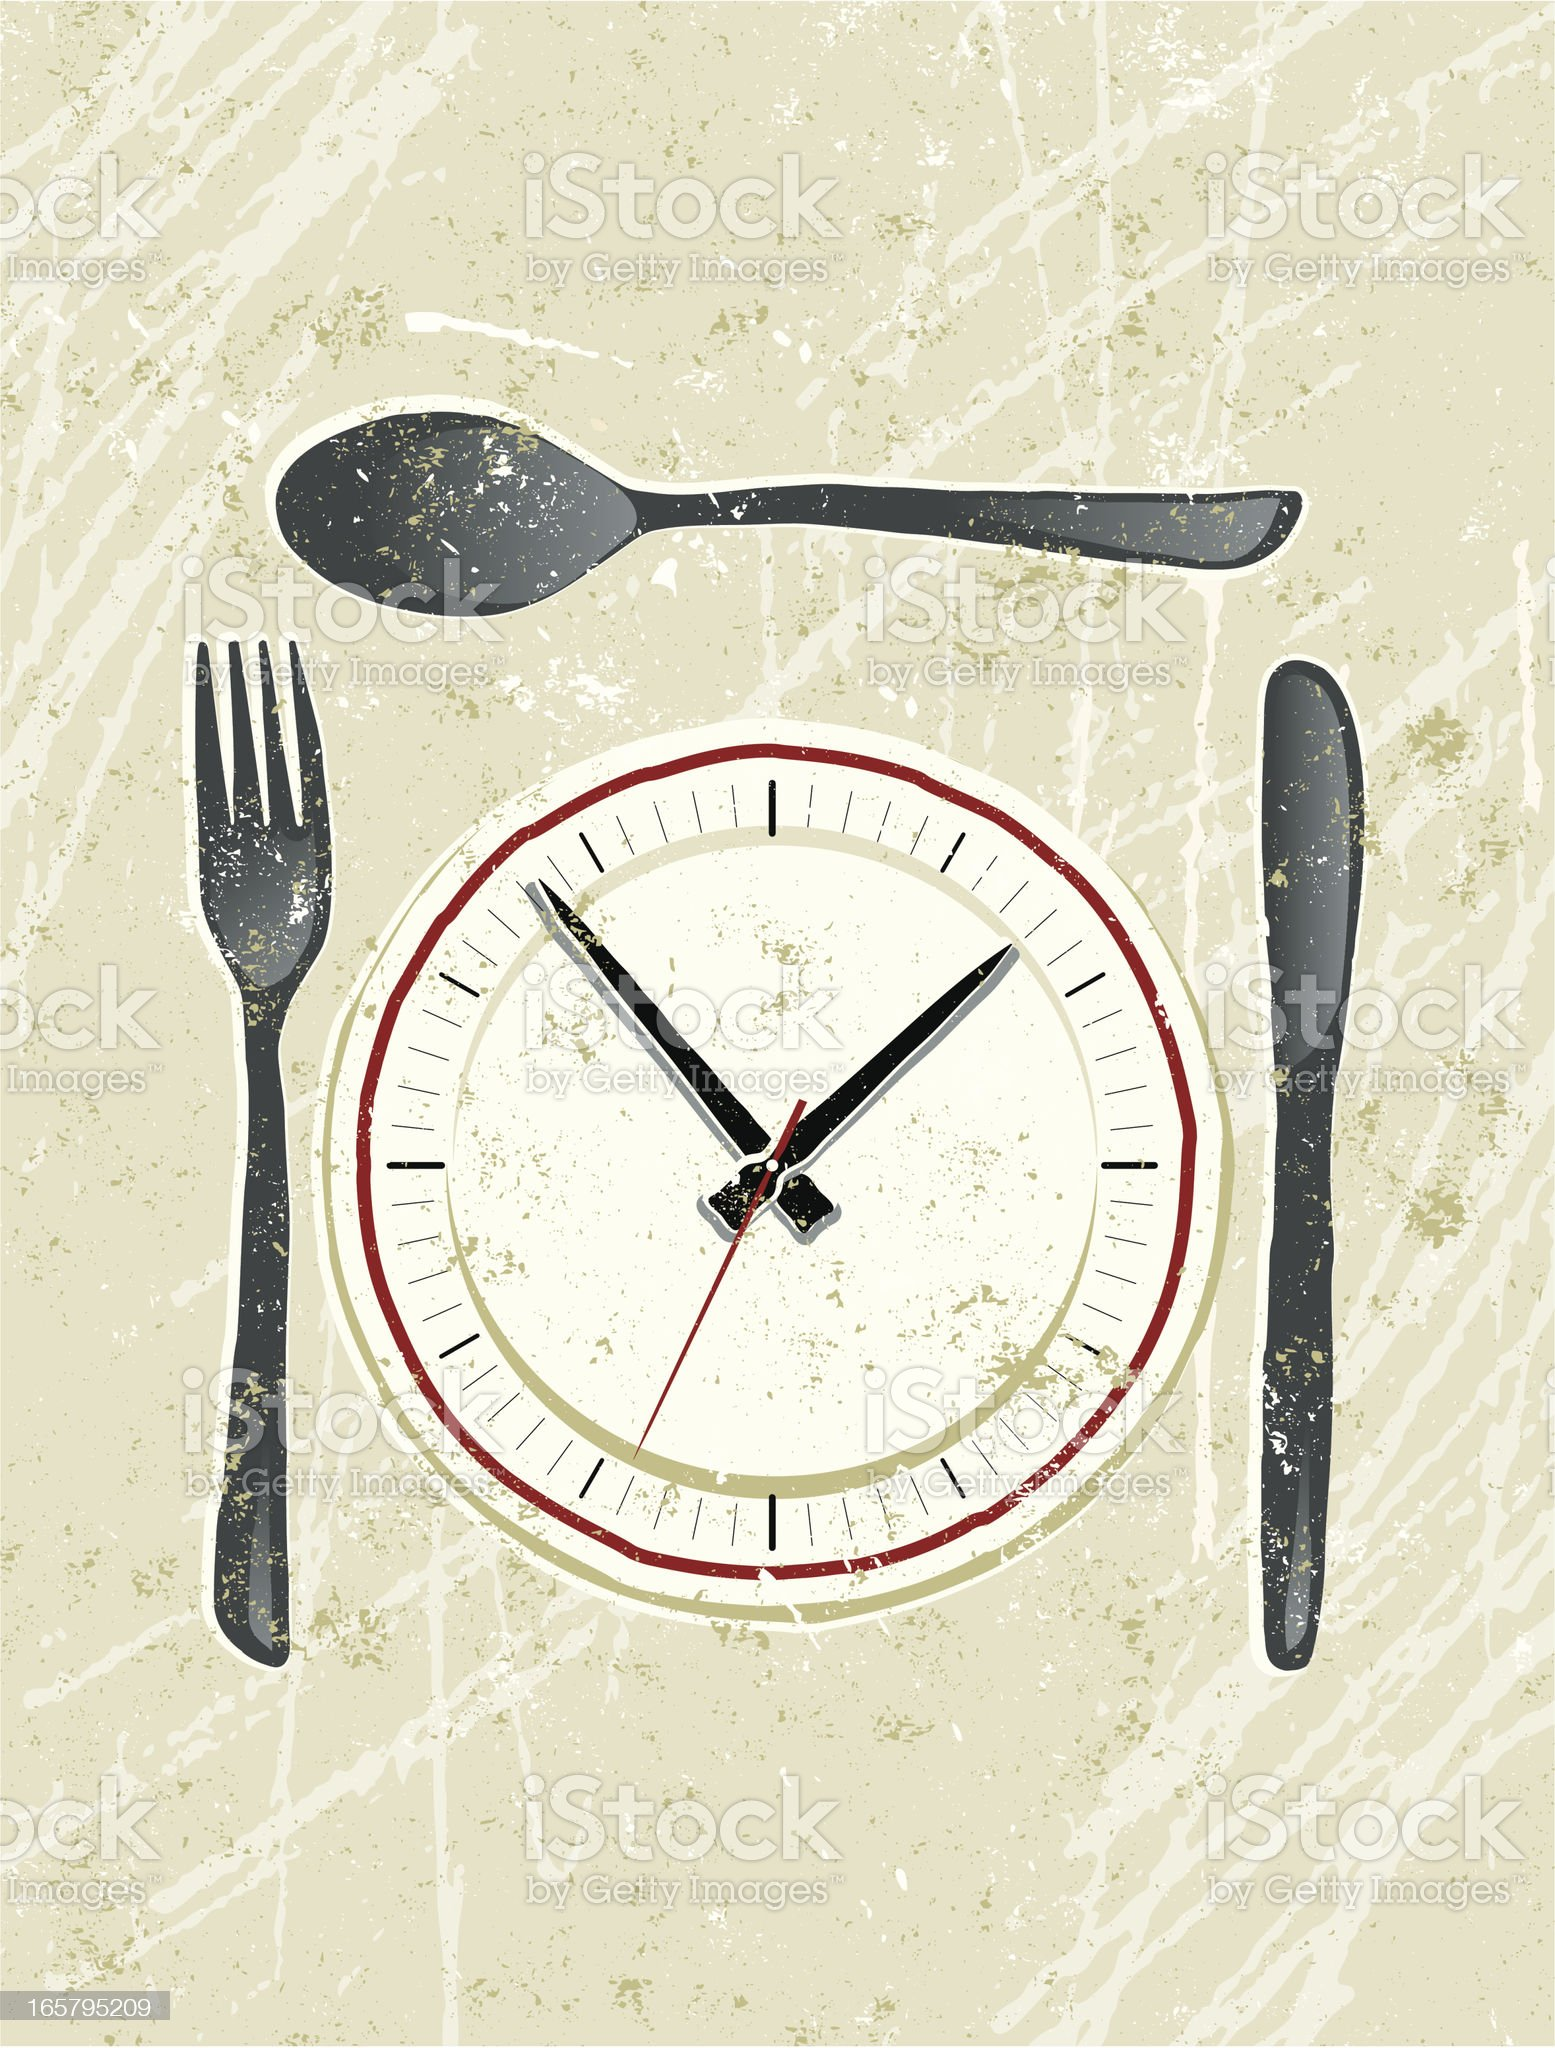 Clockface on a plate with Knife and Fork royalty-free stock vector art